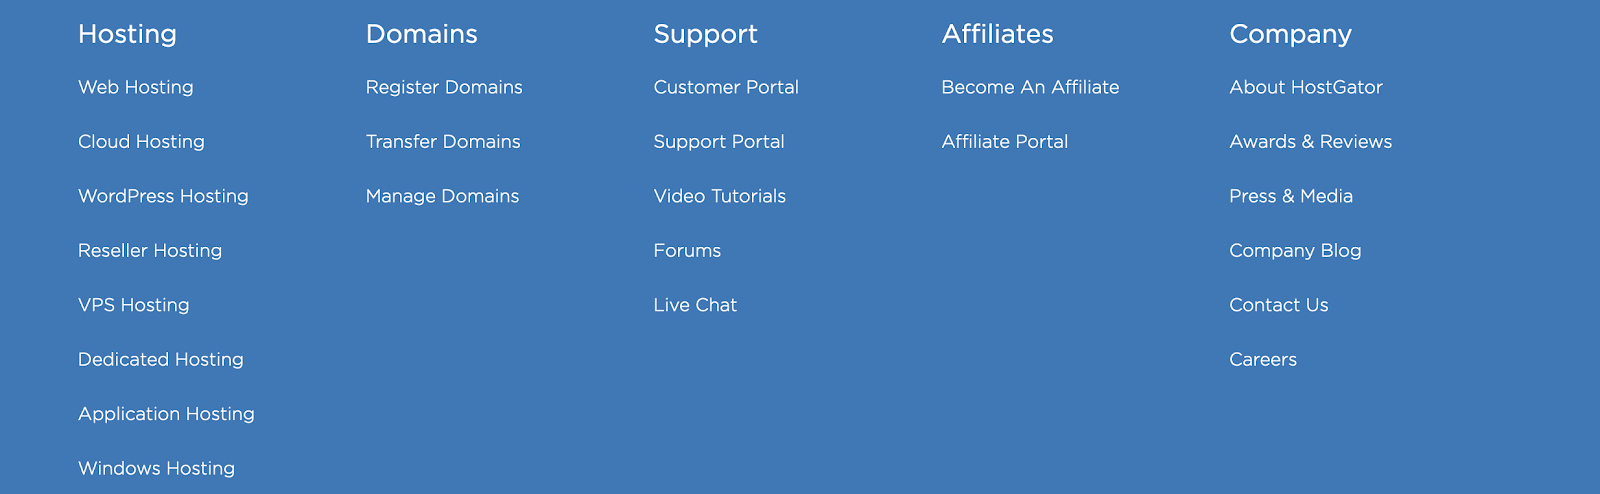 website footer with internal links to important pages